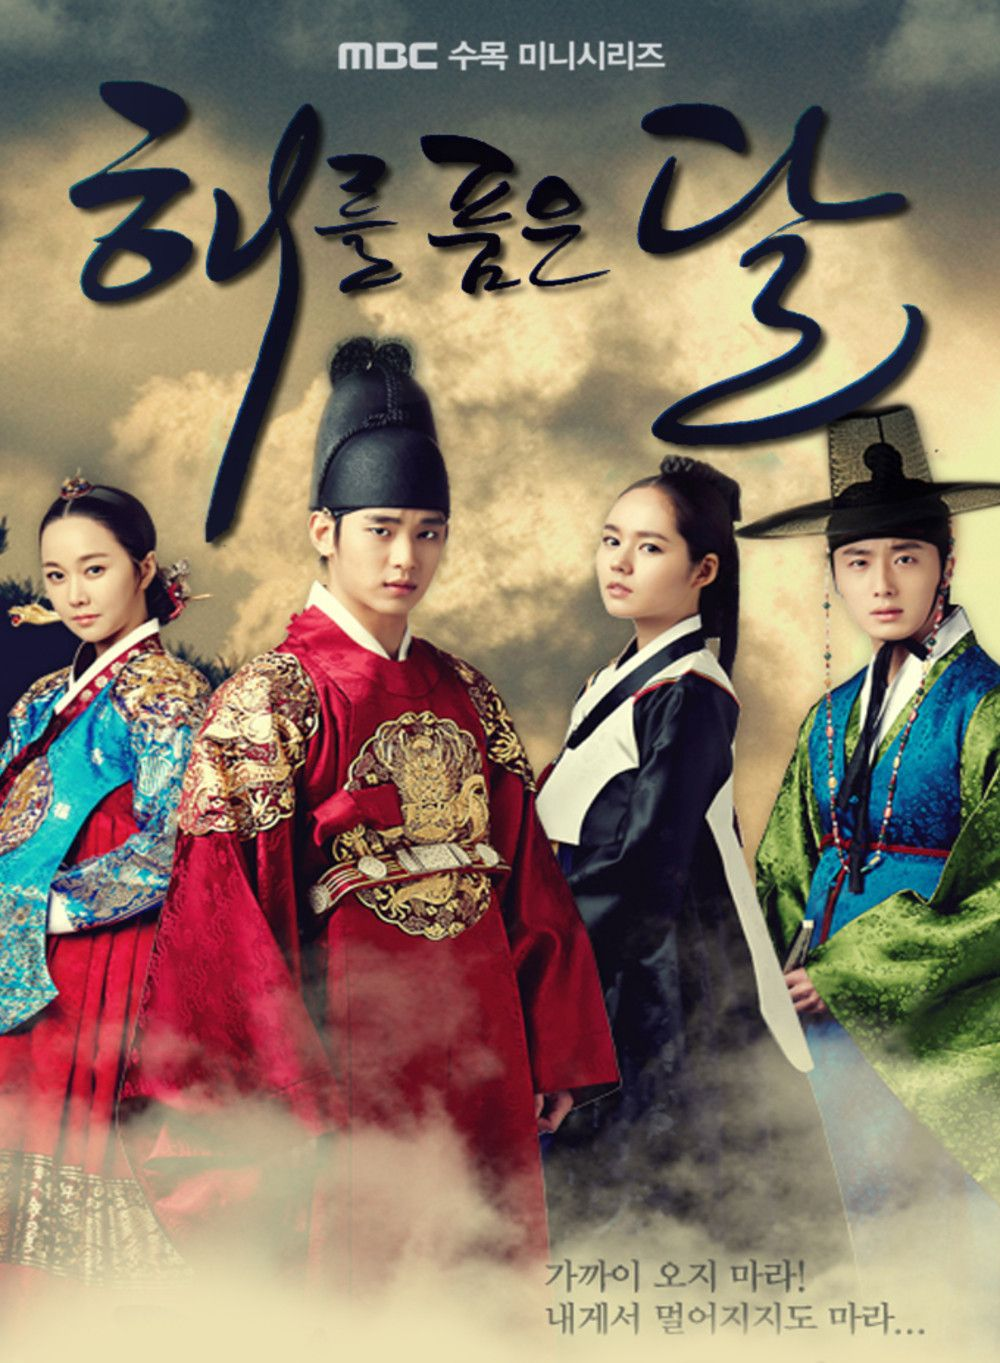 The Moon Embracing the Sun | Korean drama series, Historical korean drama, Watch korean drama